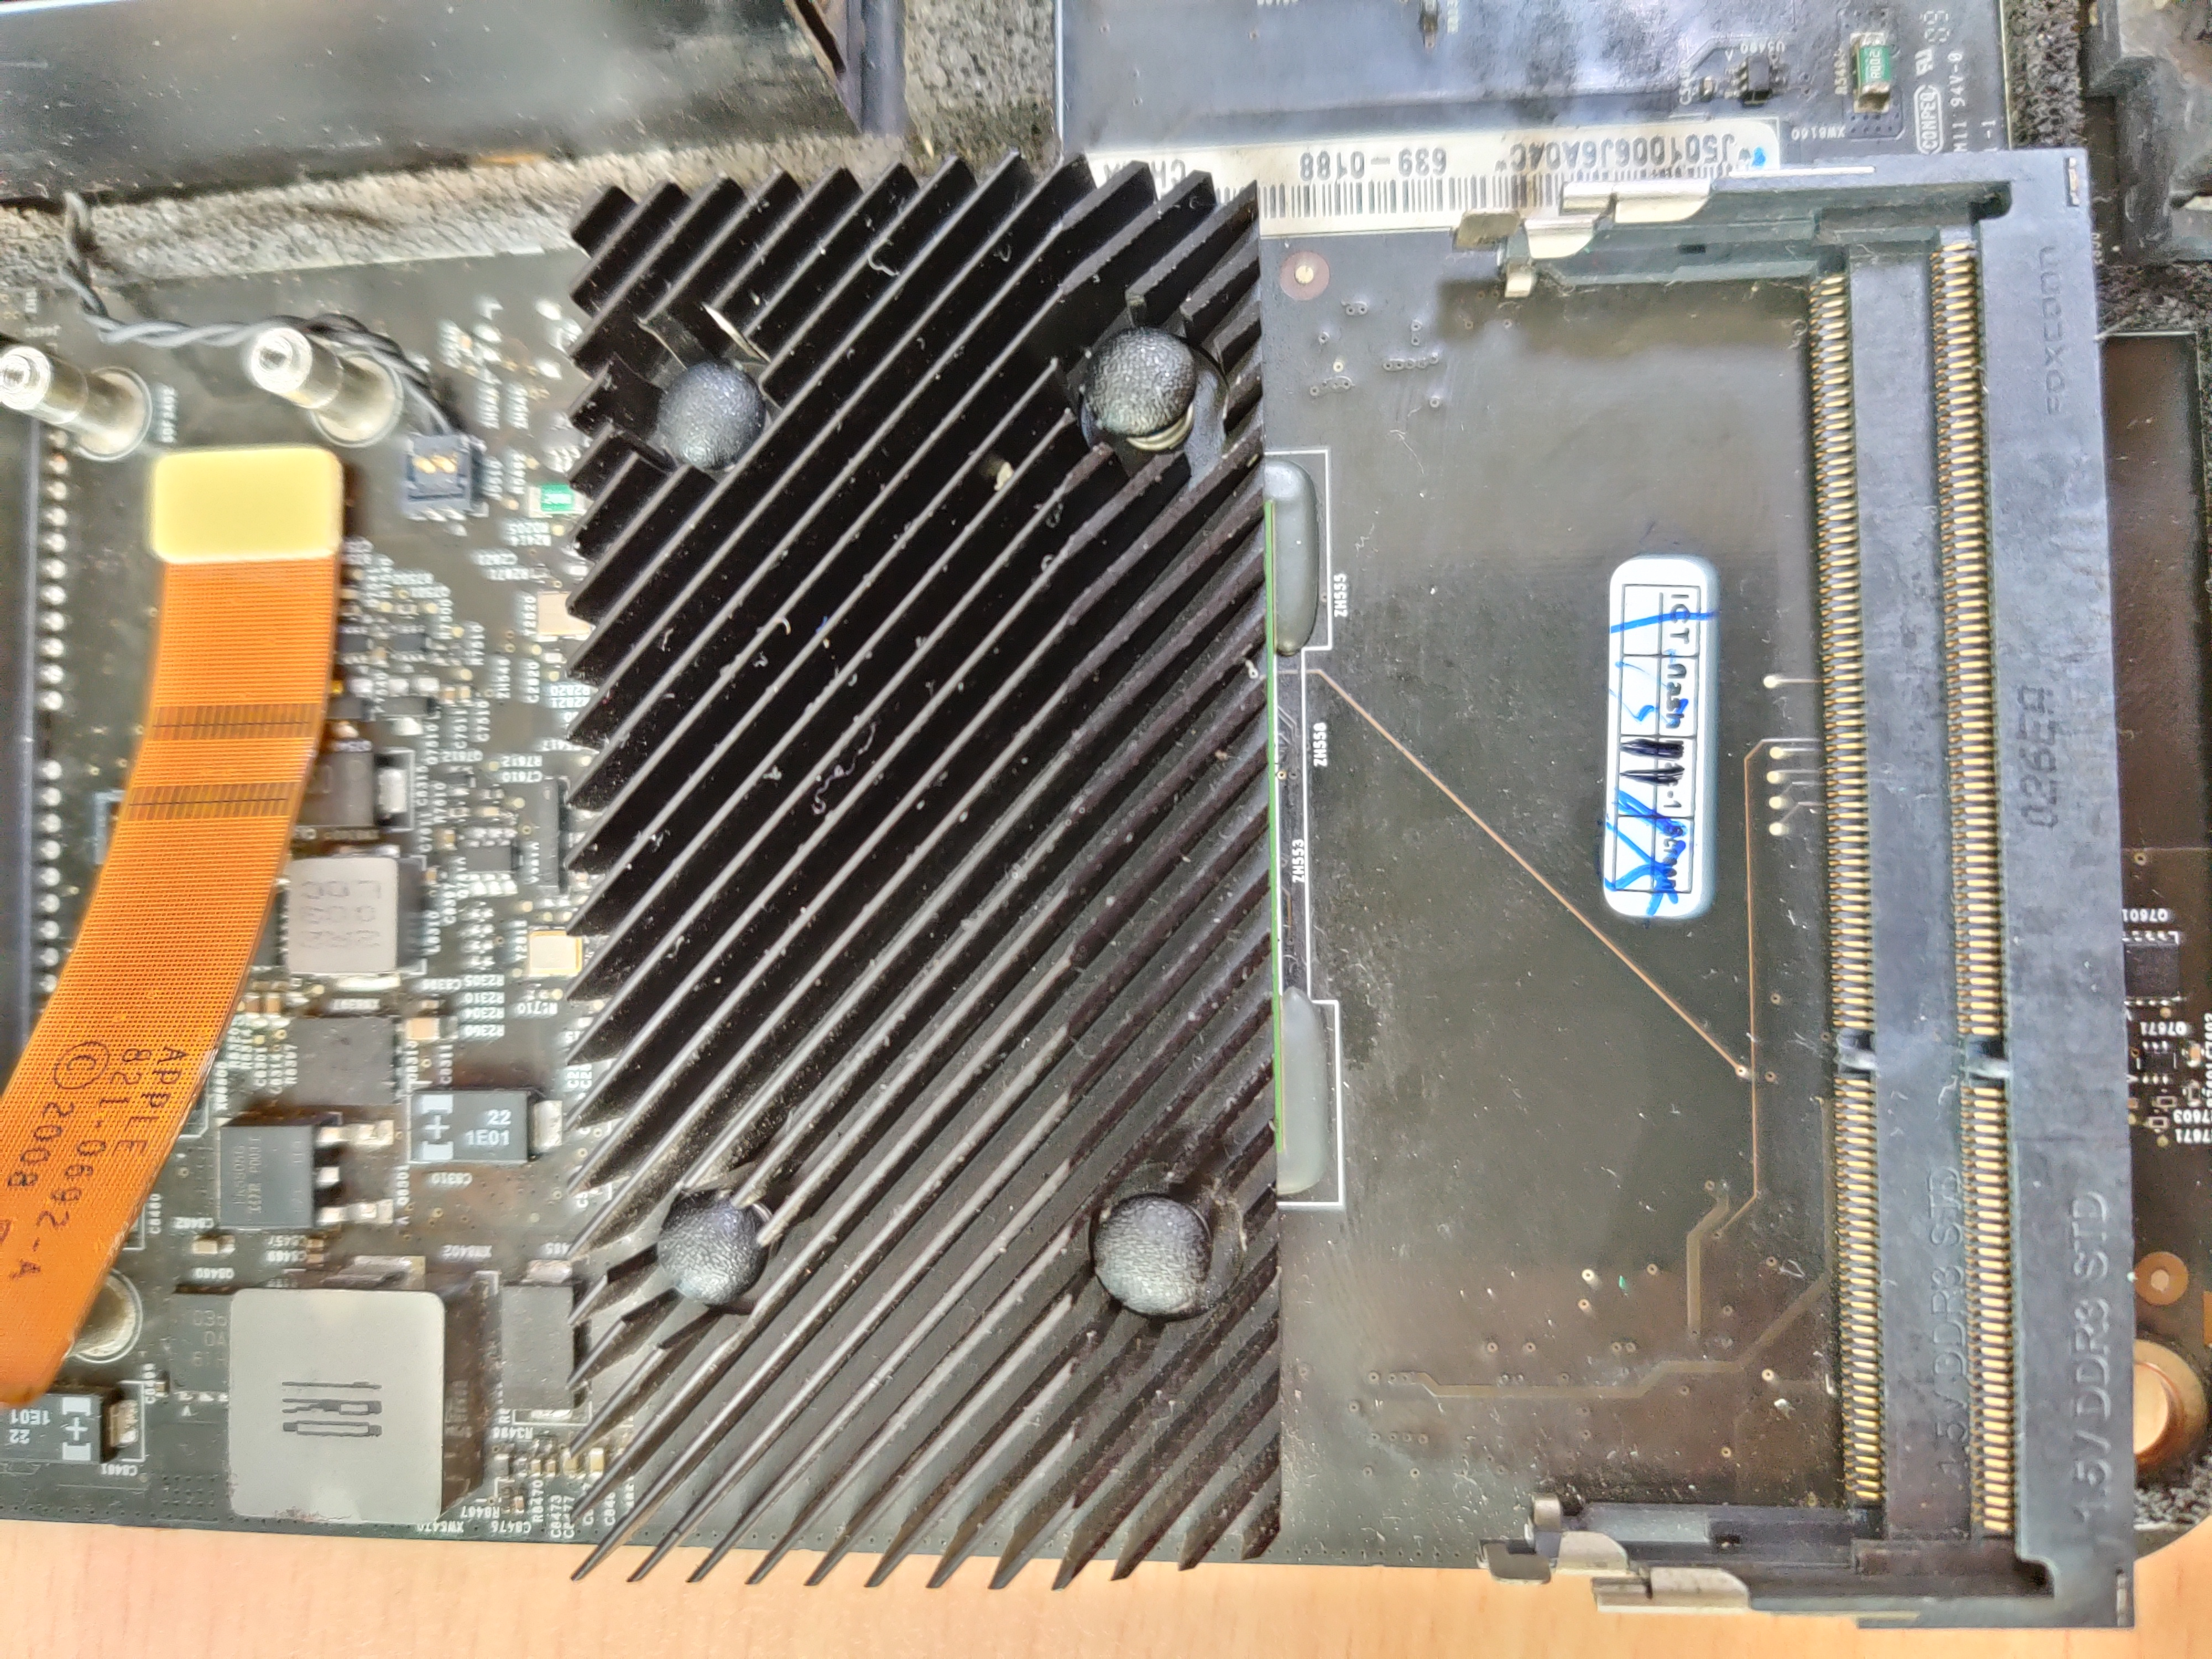 MCP79 Chipset under heatsheld